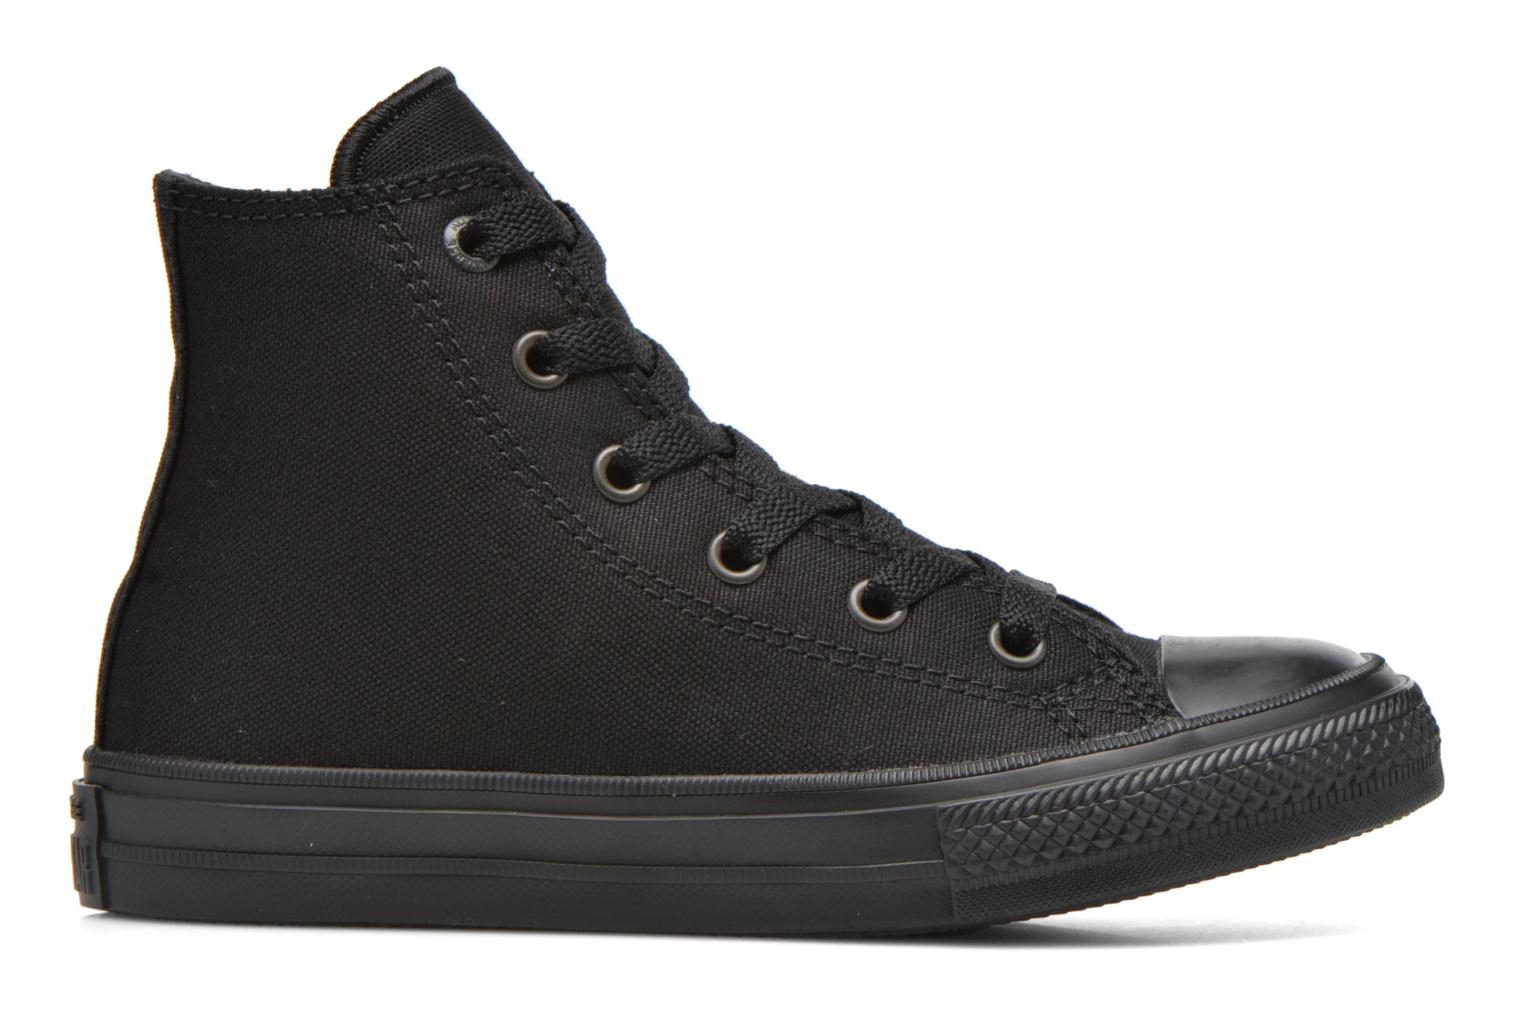 Chuck Taylor All Star II Hi Black Black Black